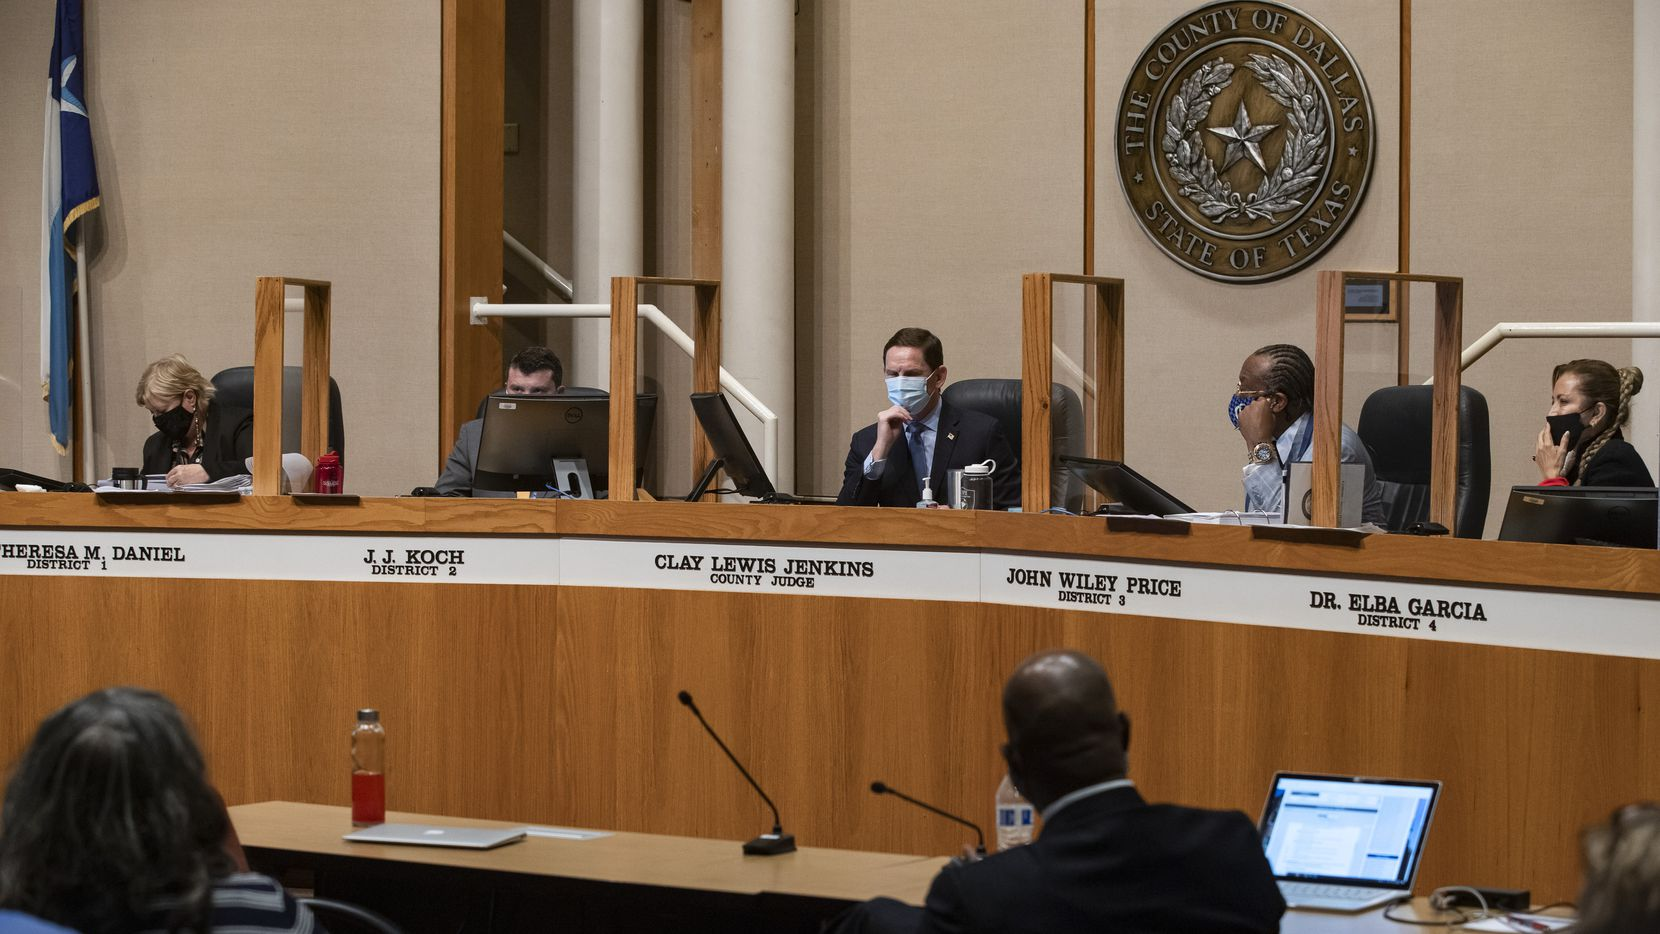 Dallas County Judge Clay Jenkins (center) and county commissioners listened to a presentation during a meeting at the County Administration Building in Dallas on May 18, 2021.